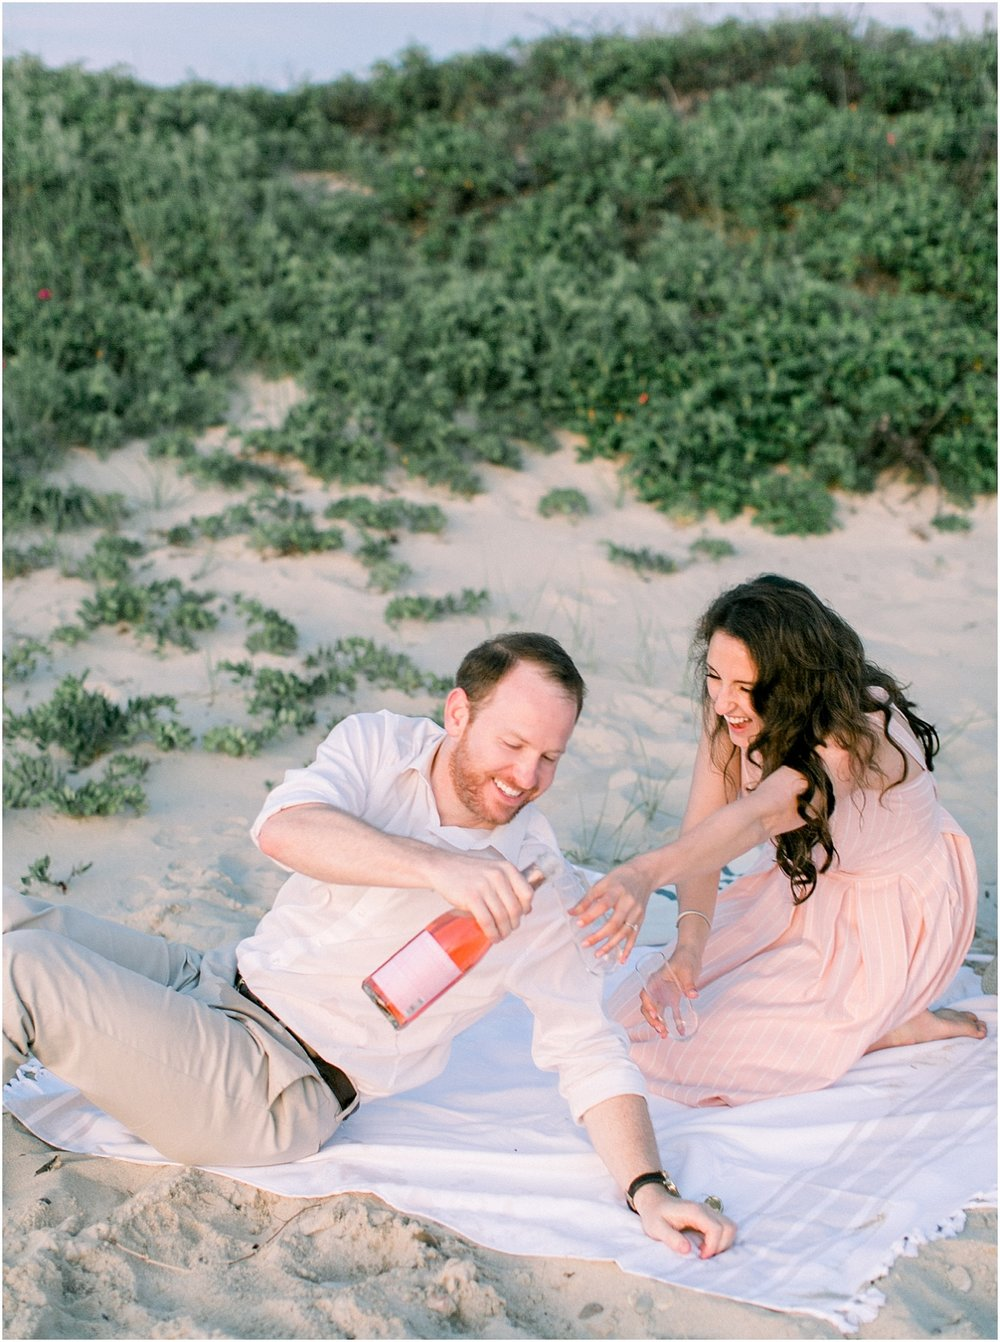 love_and_light_photographs_meredith_chris_engagement_martha_vineyard_marthas_nancys_cape_cod_boston_wedding_photographer_meredith_jane_photography_photo_0462.jpg